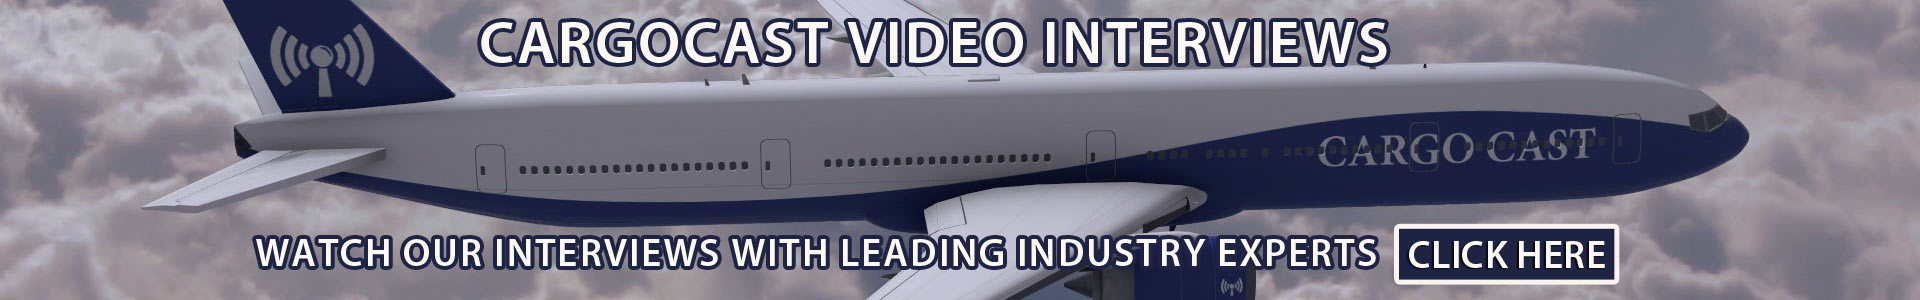 Cargocast Video Interviews with Air Cargo Industry Leaders